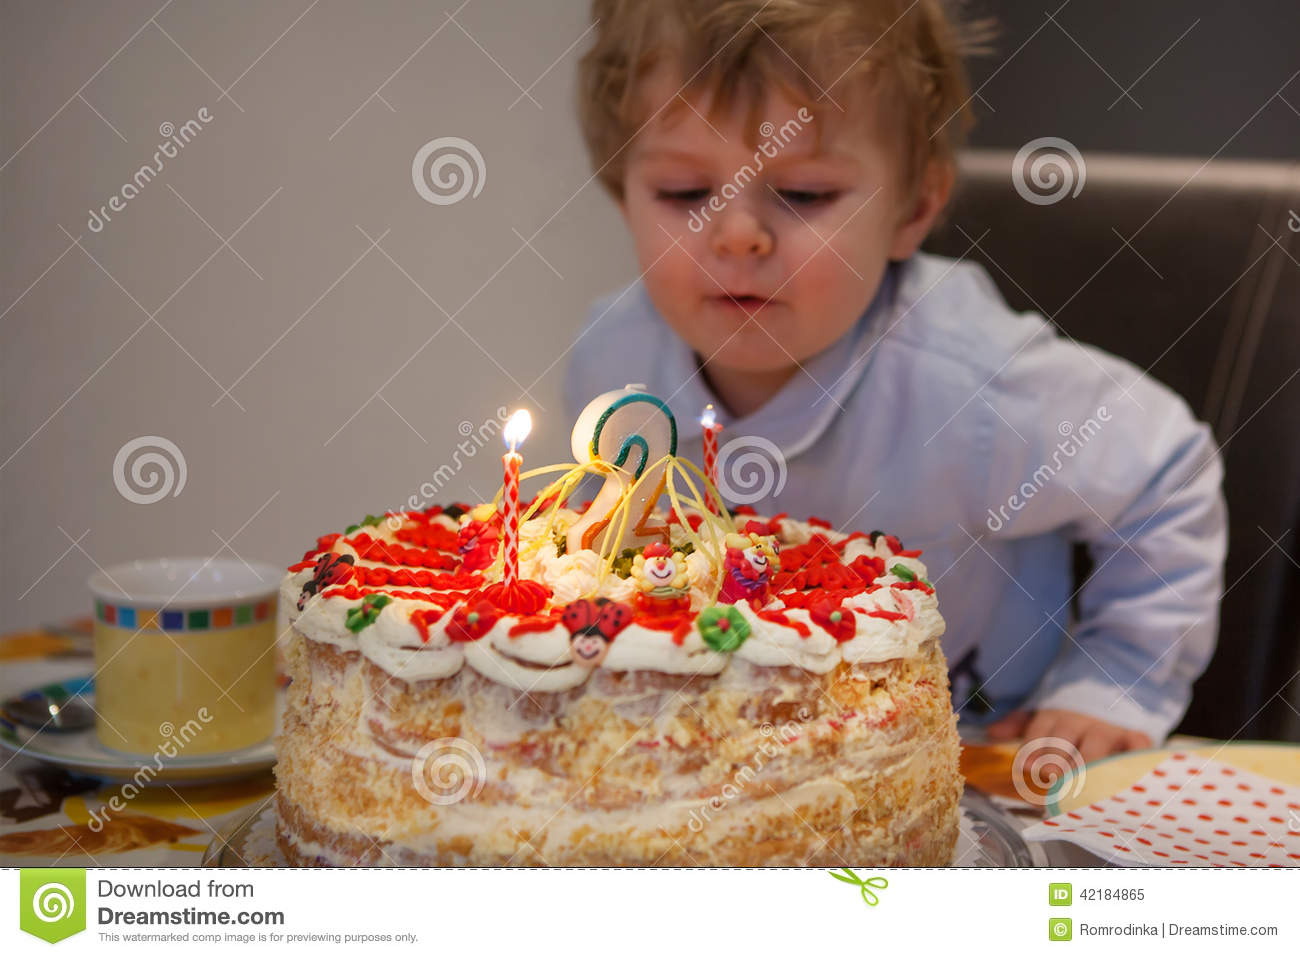 Toddler Child Blowing Candles On His 2 Birthday Cake Stock Image